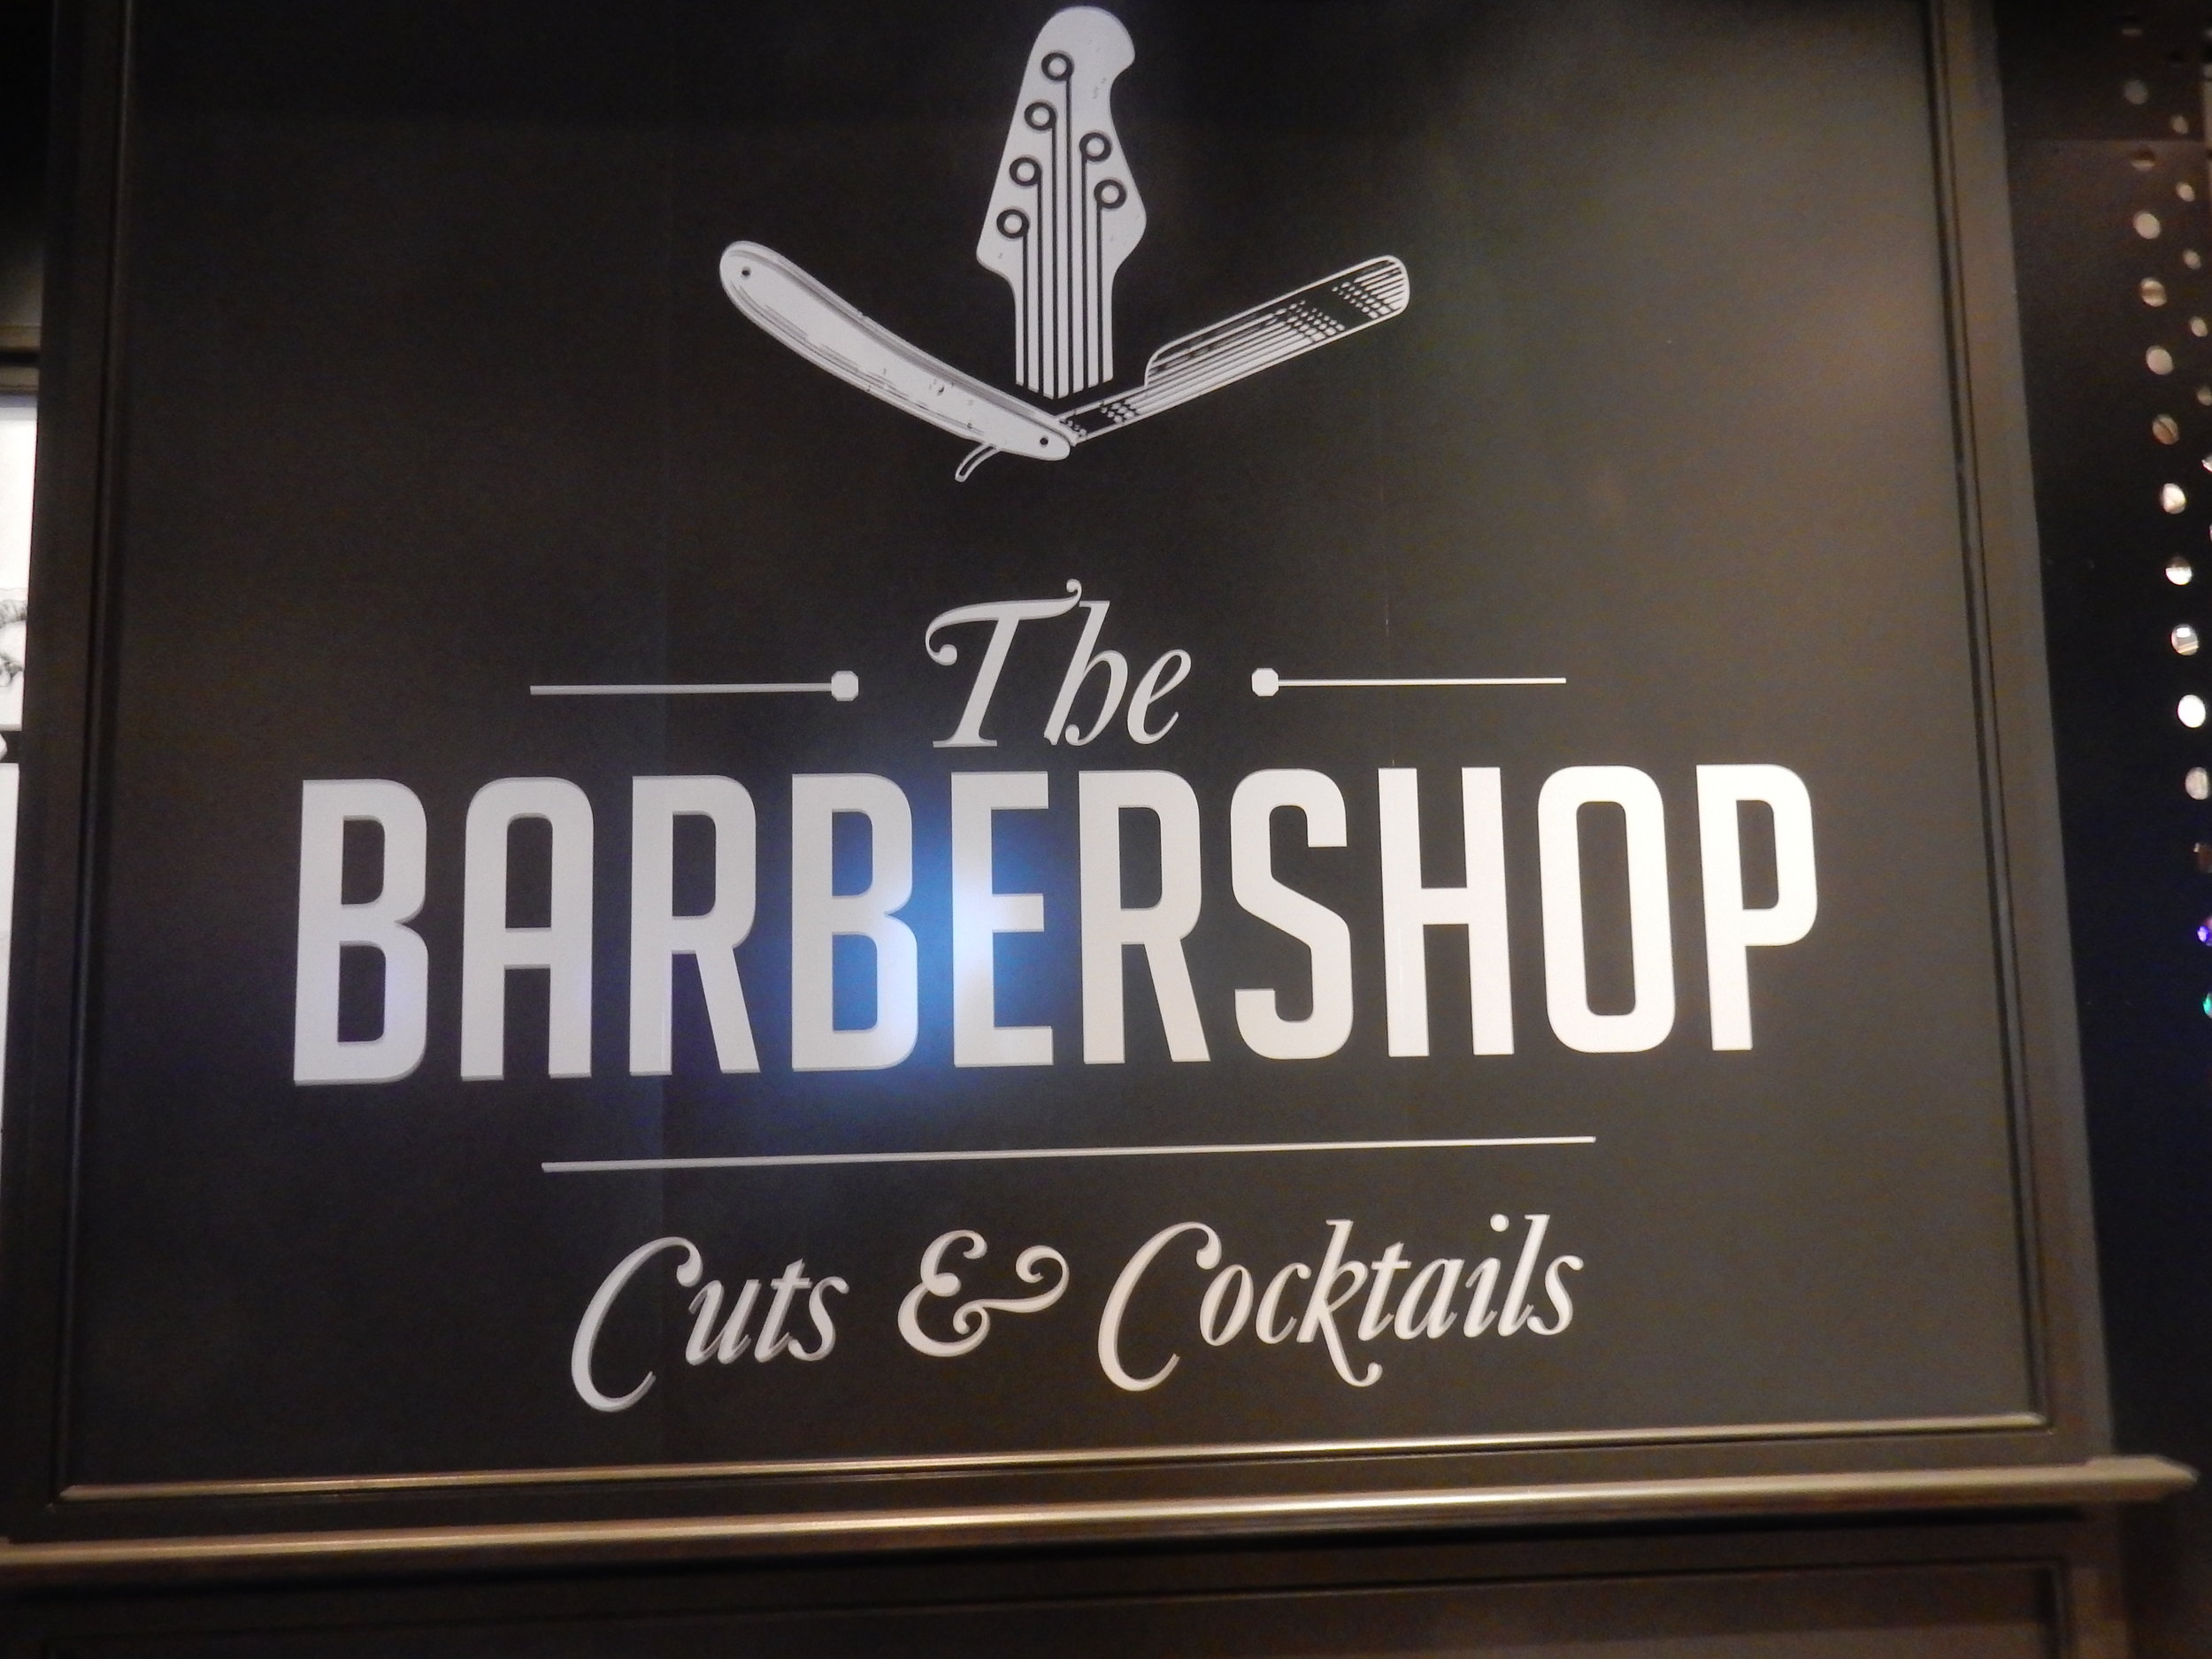 So desperate are Las Vegas entrepreneurs for novel concepts that sometimes they step across the line between good ideas and bad ones. A restaurant where haircuts are taking place?